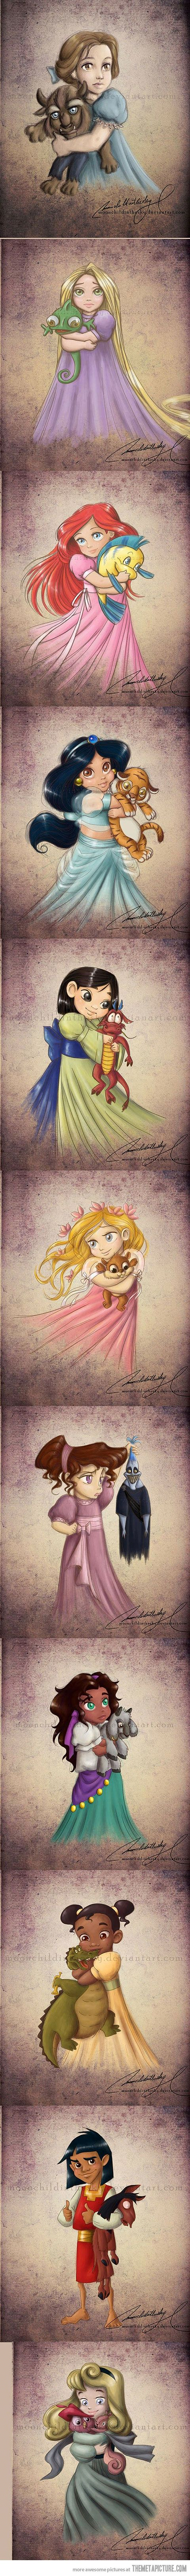 Little Disney Princesses and Their Pets... And then there's Kuzco. Hahaha